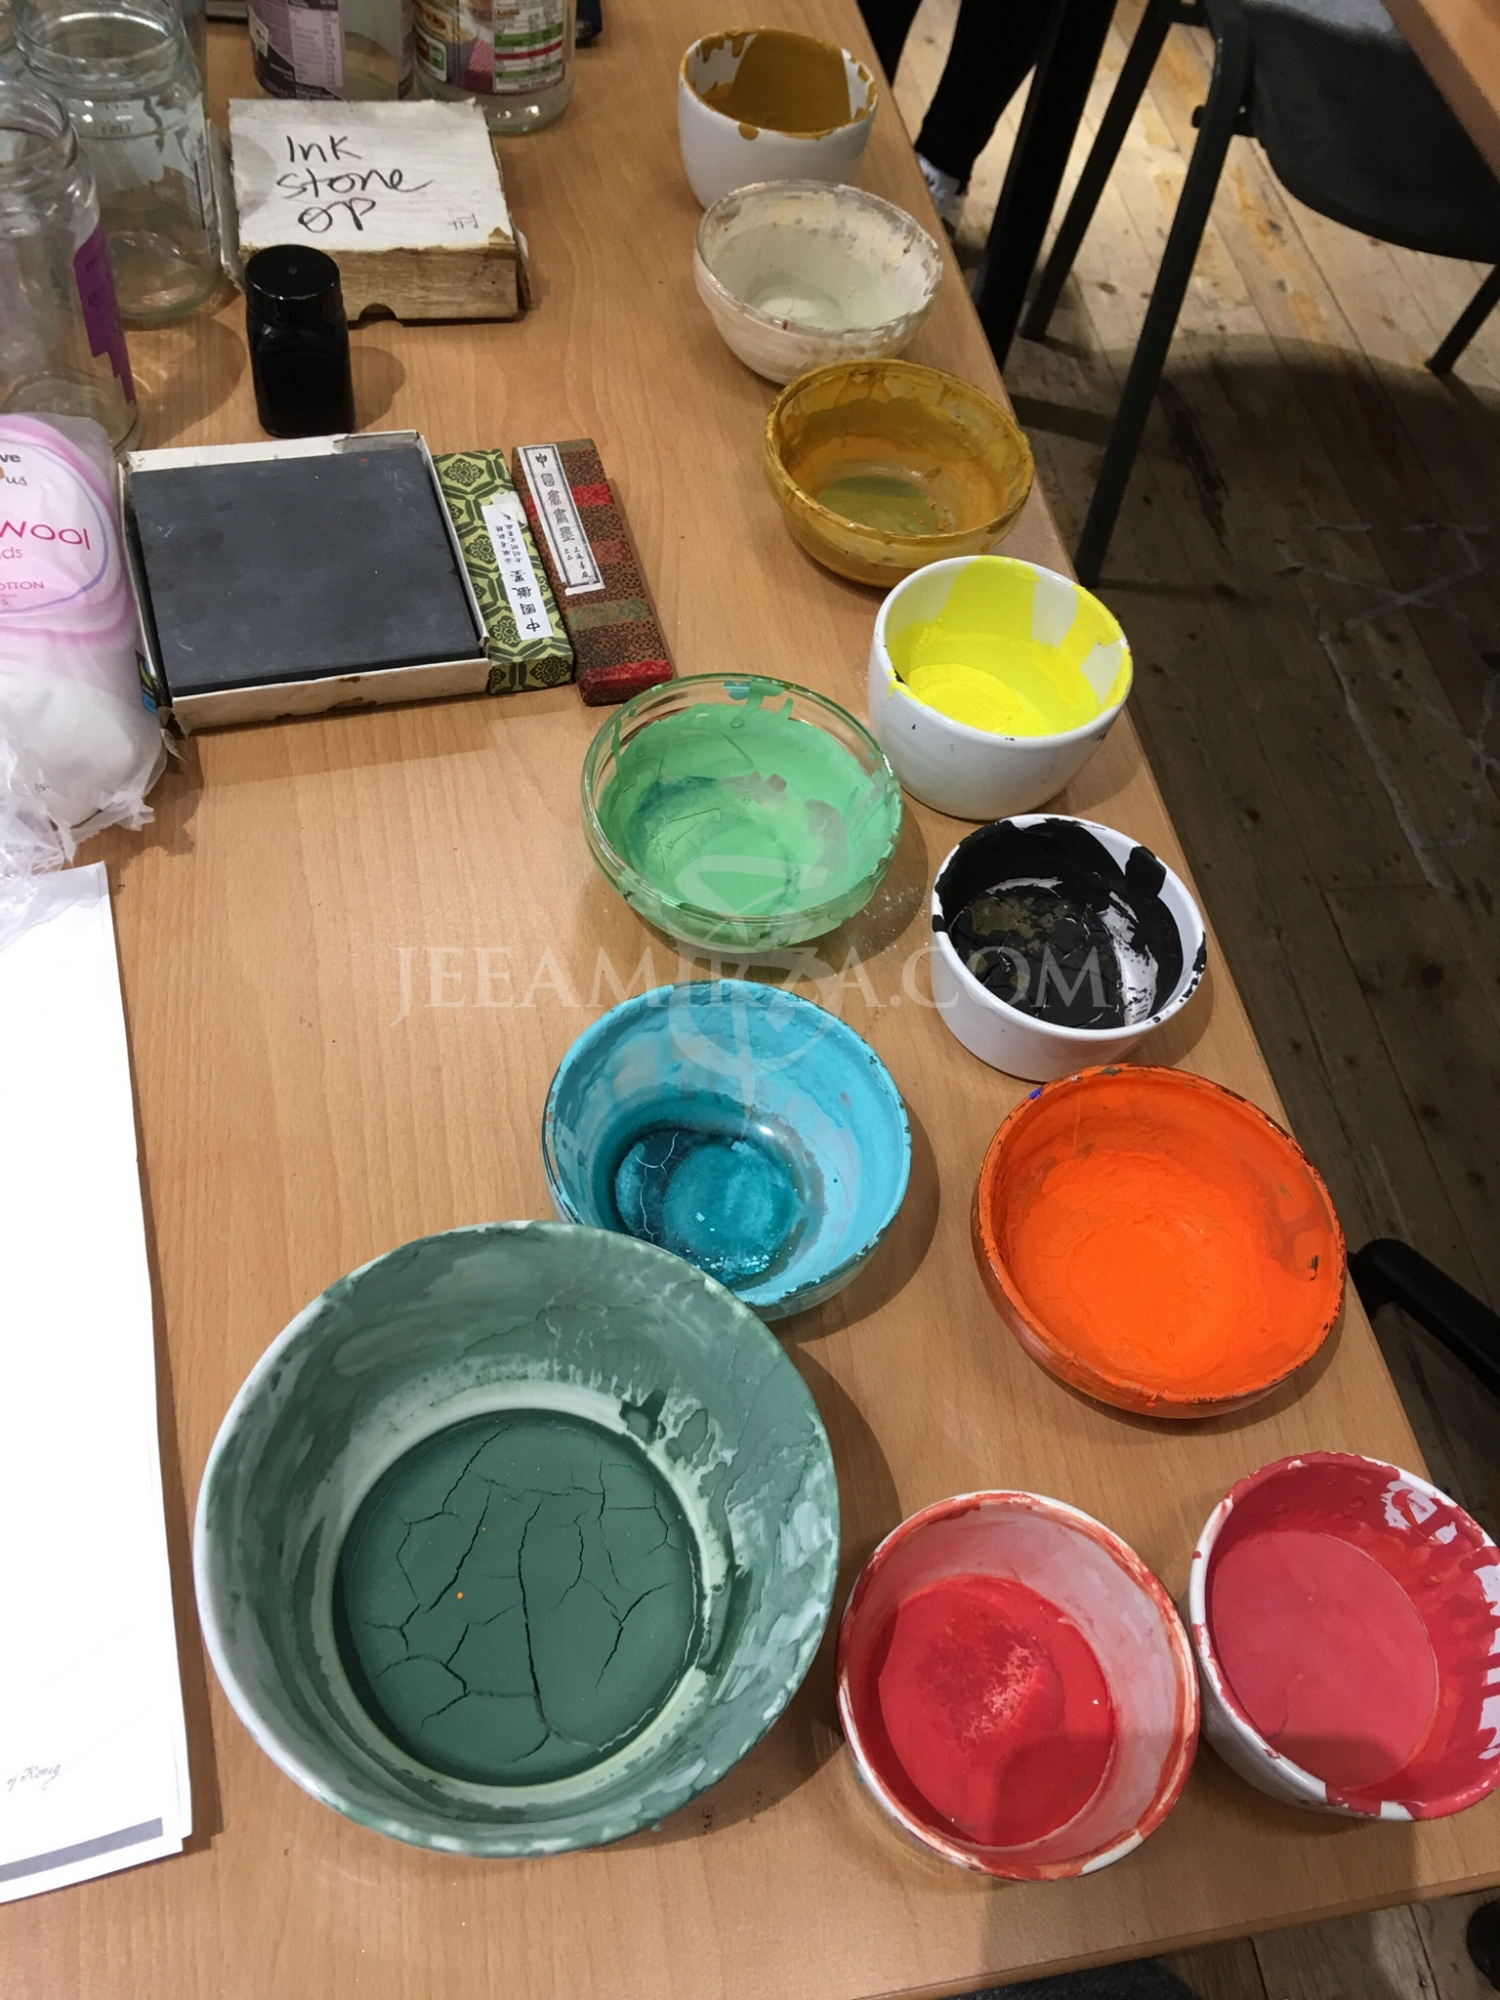 1. A selection of dried pre-mixed pigments